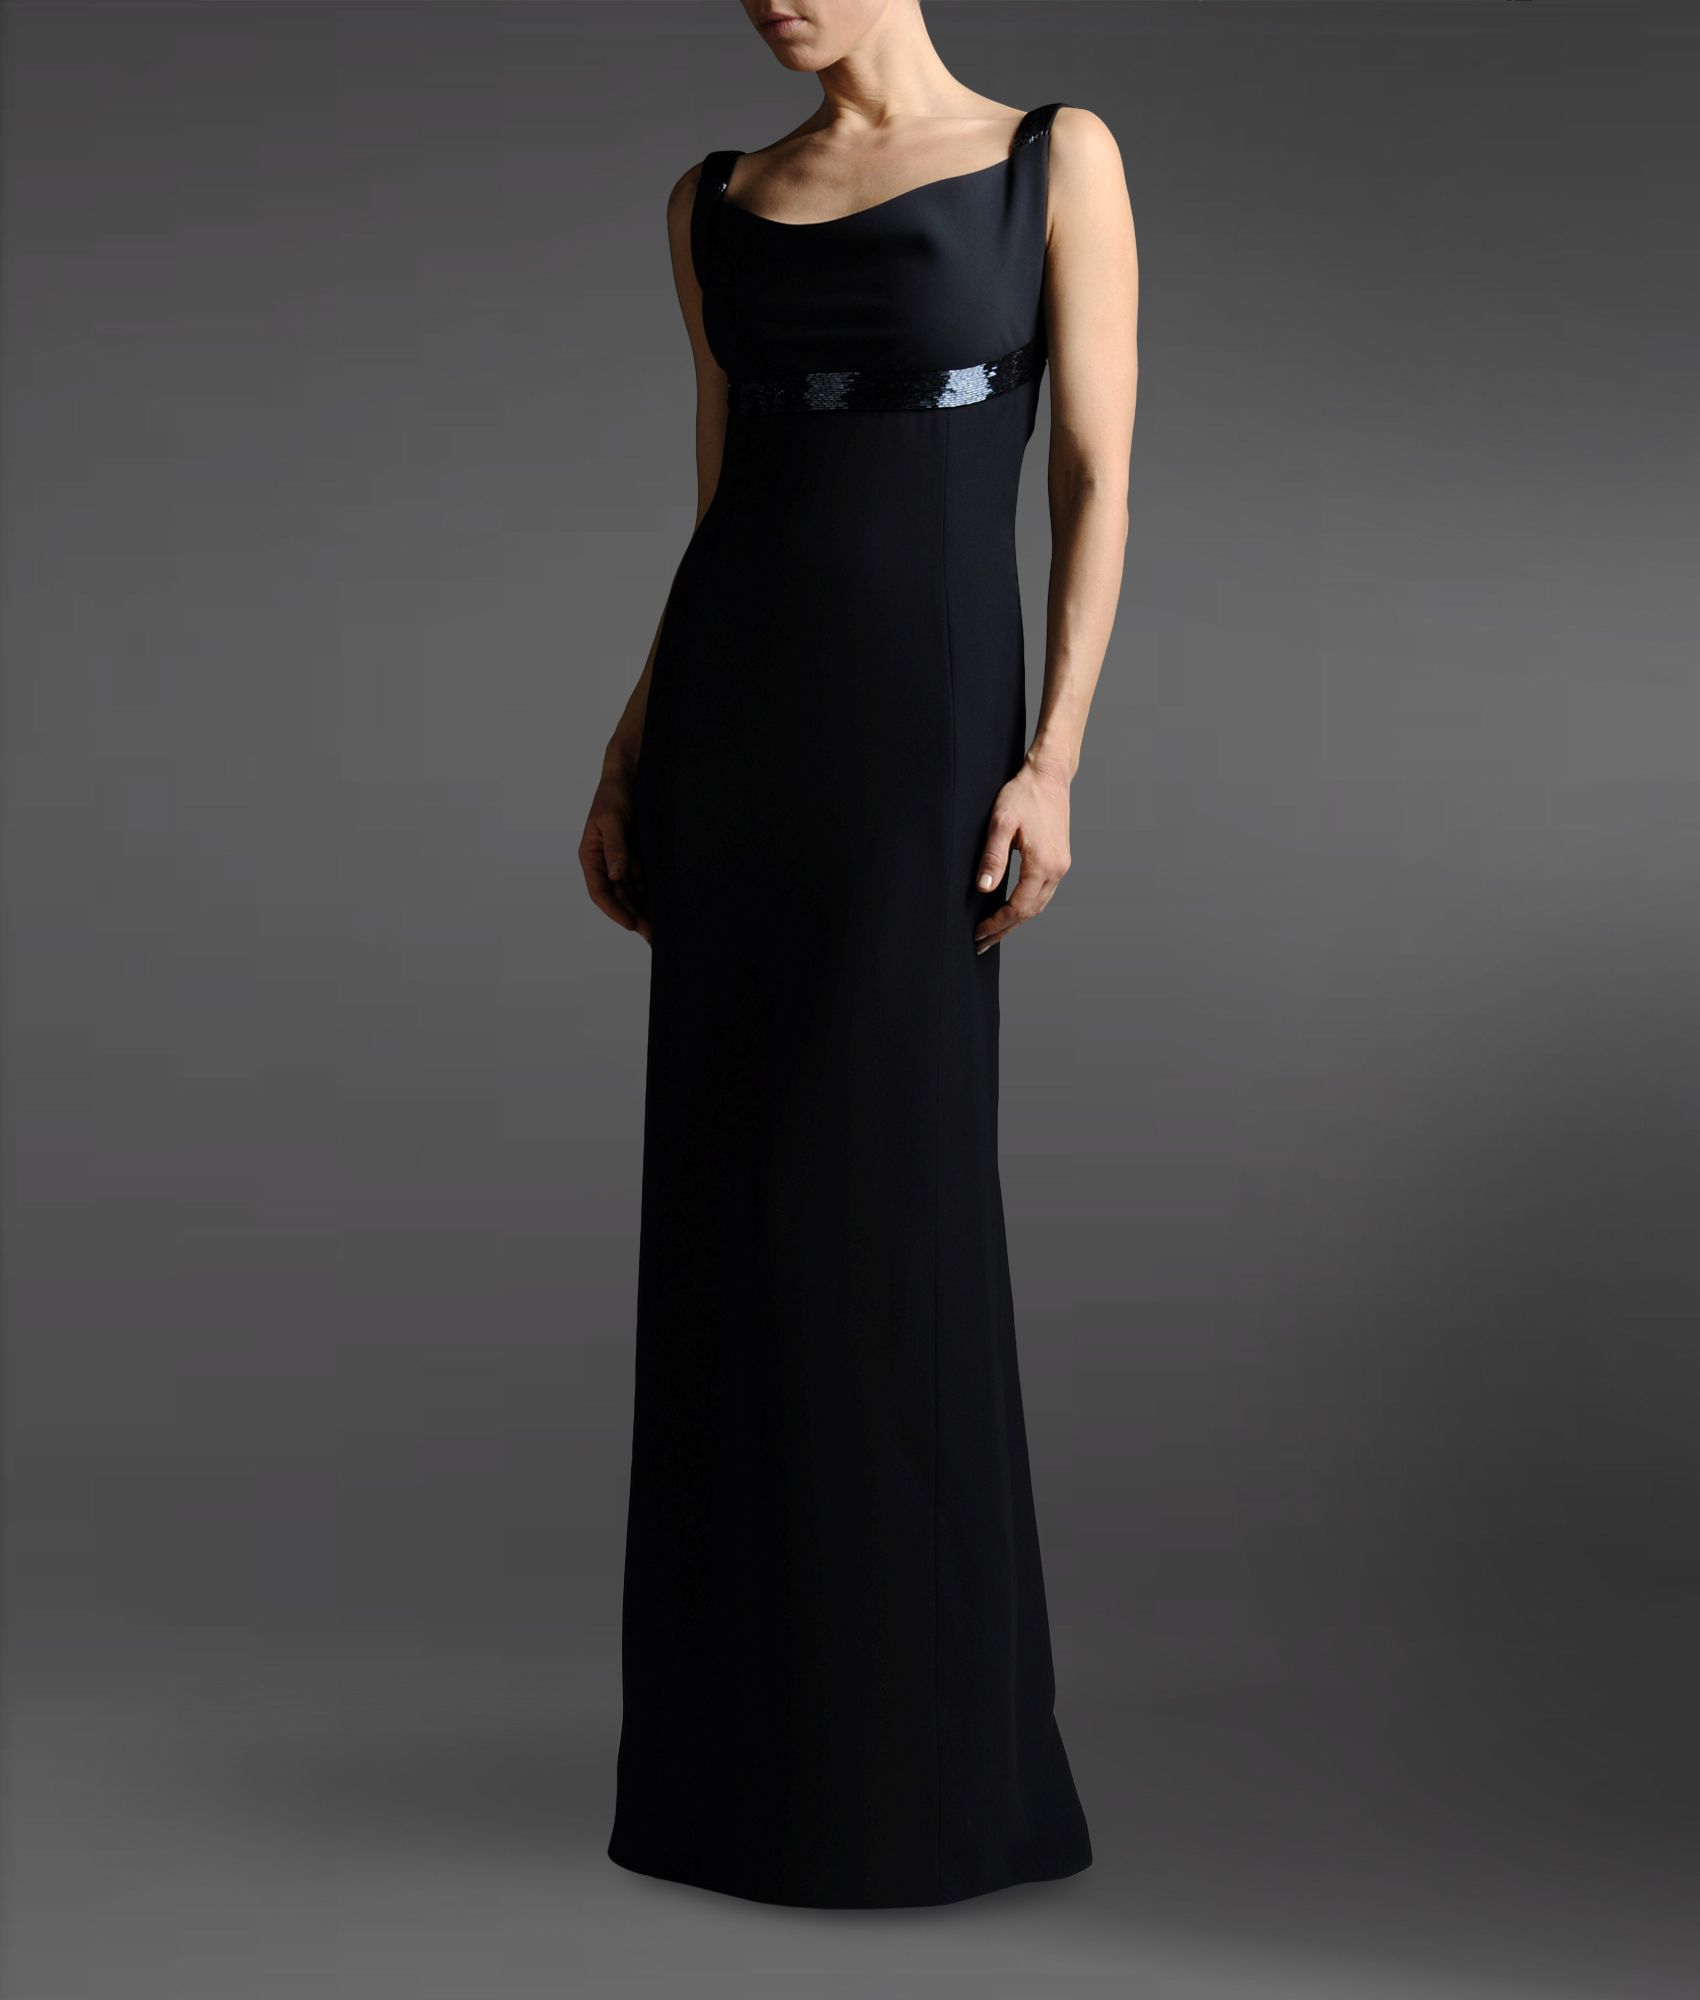 Armani Long Crêpe Dress Embellished with Beads in Black | Lyst